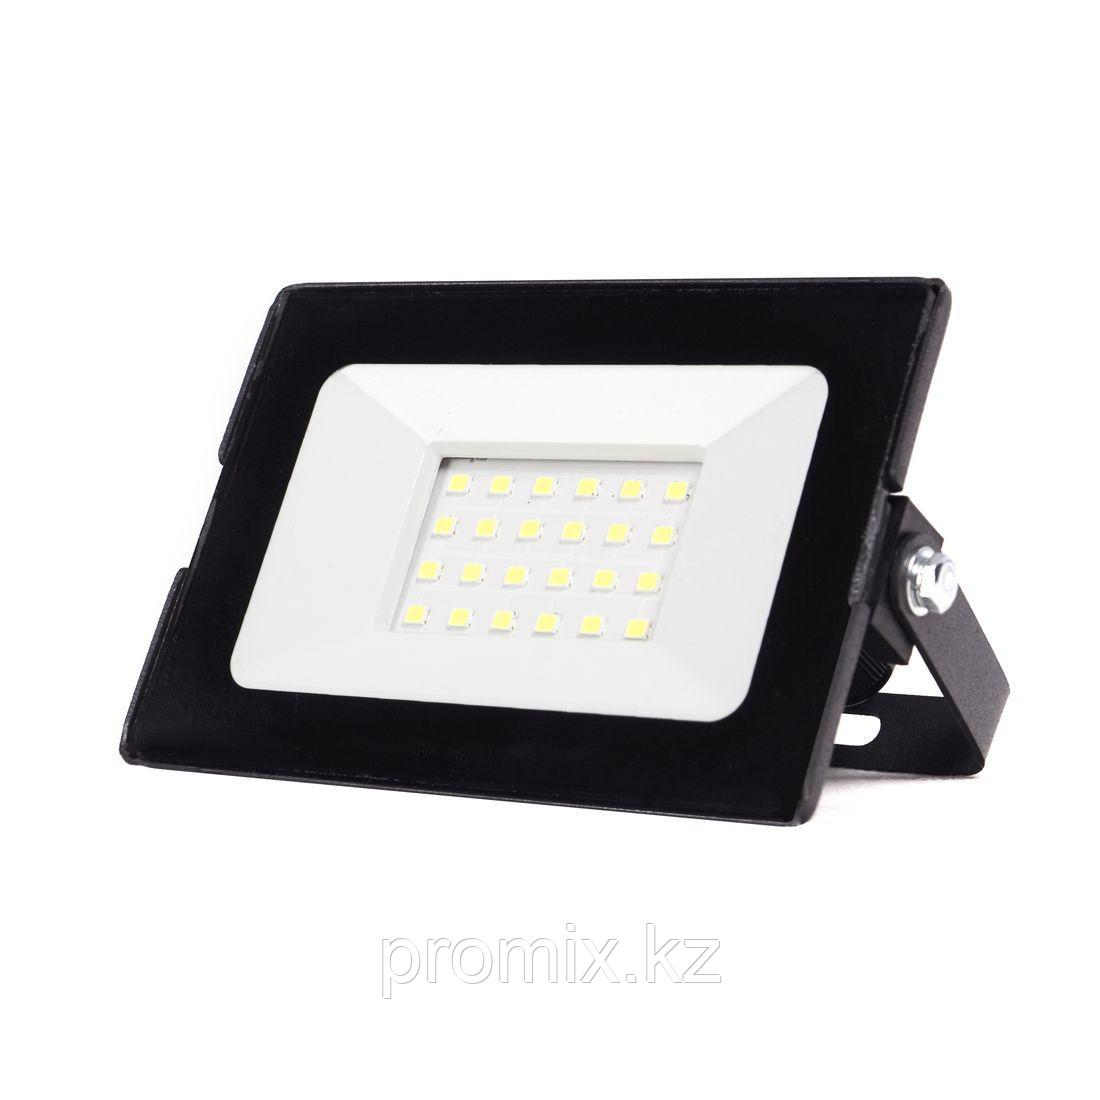 Прожектор LED SMD Ultraflash LFL-2001 C02 (20Вт., 6500К)